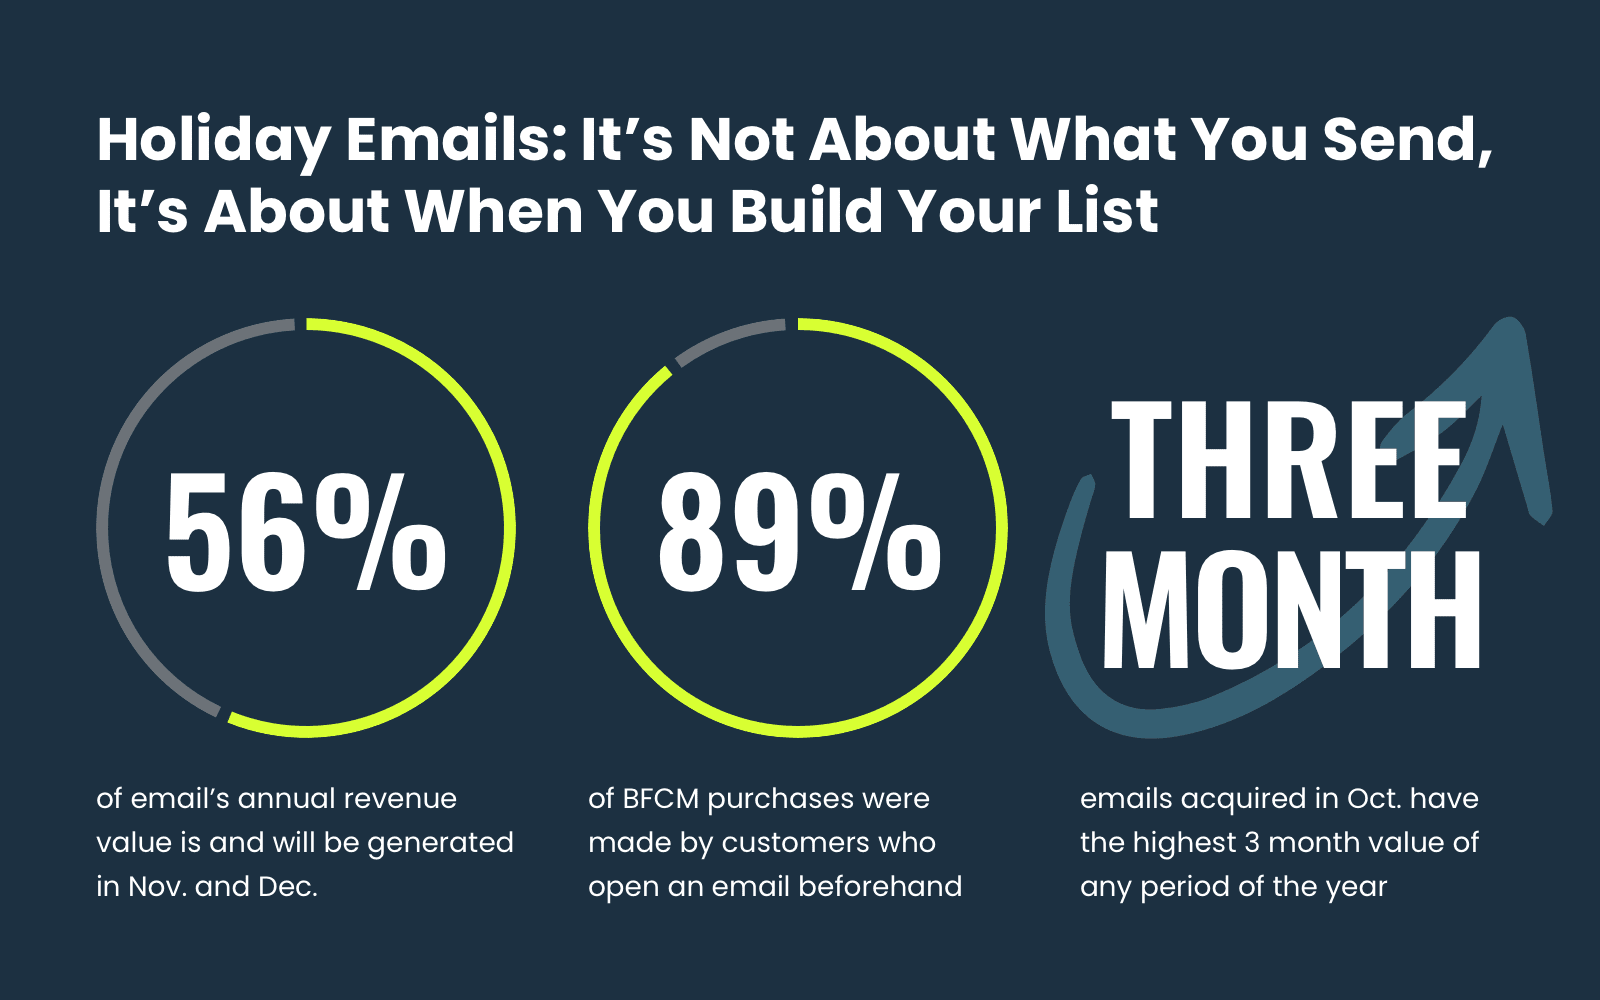 holiday email value for ecommerce businesses